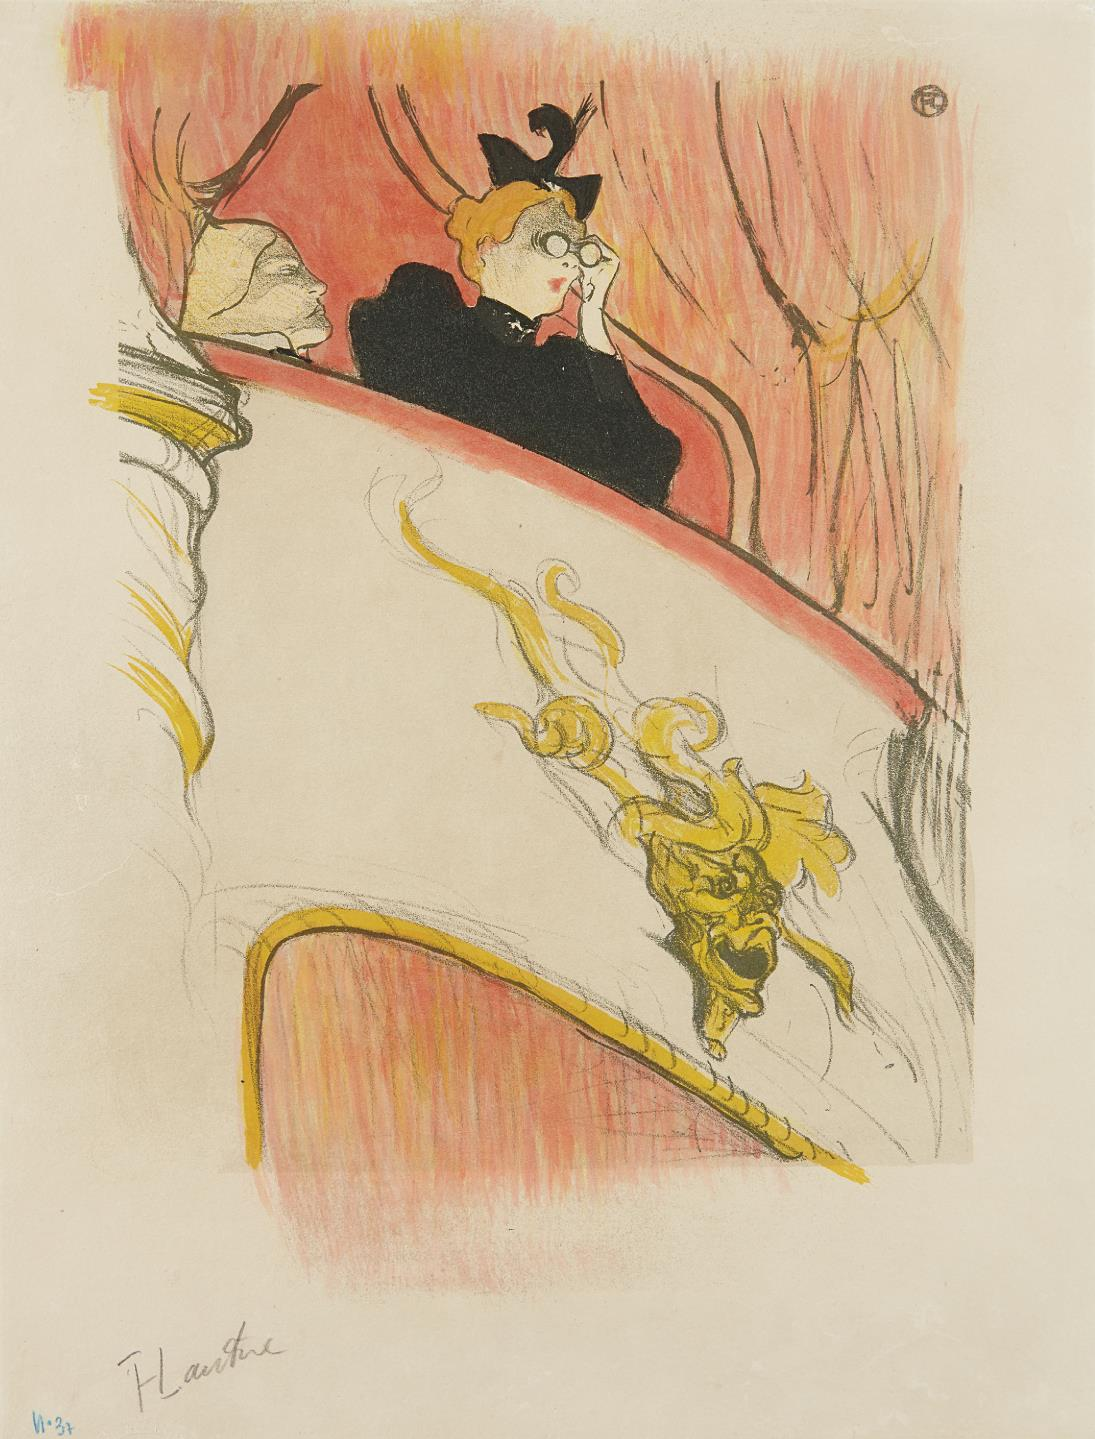 Henri de Toulouse-Lautrec-La loge au mascaron dore (The Box with the Gilded Mask)-1893